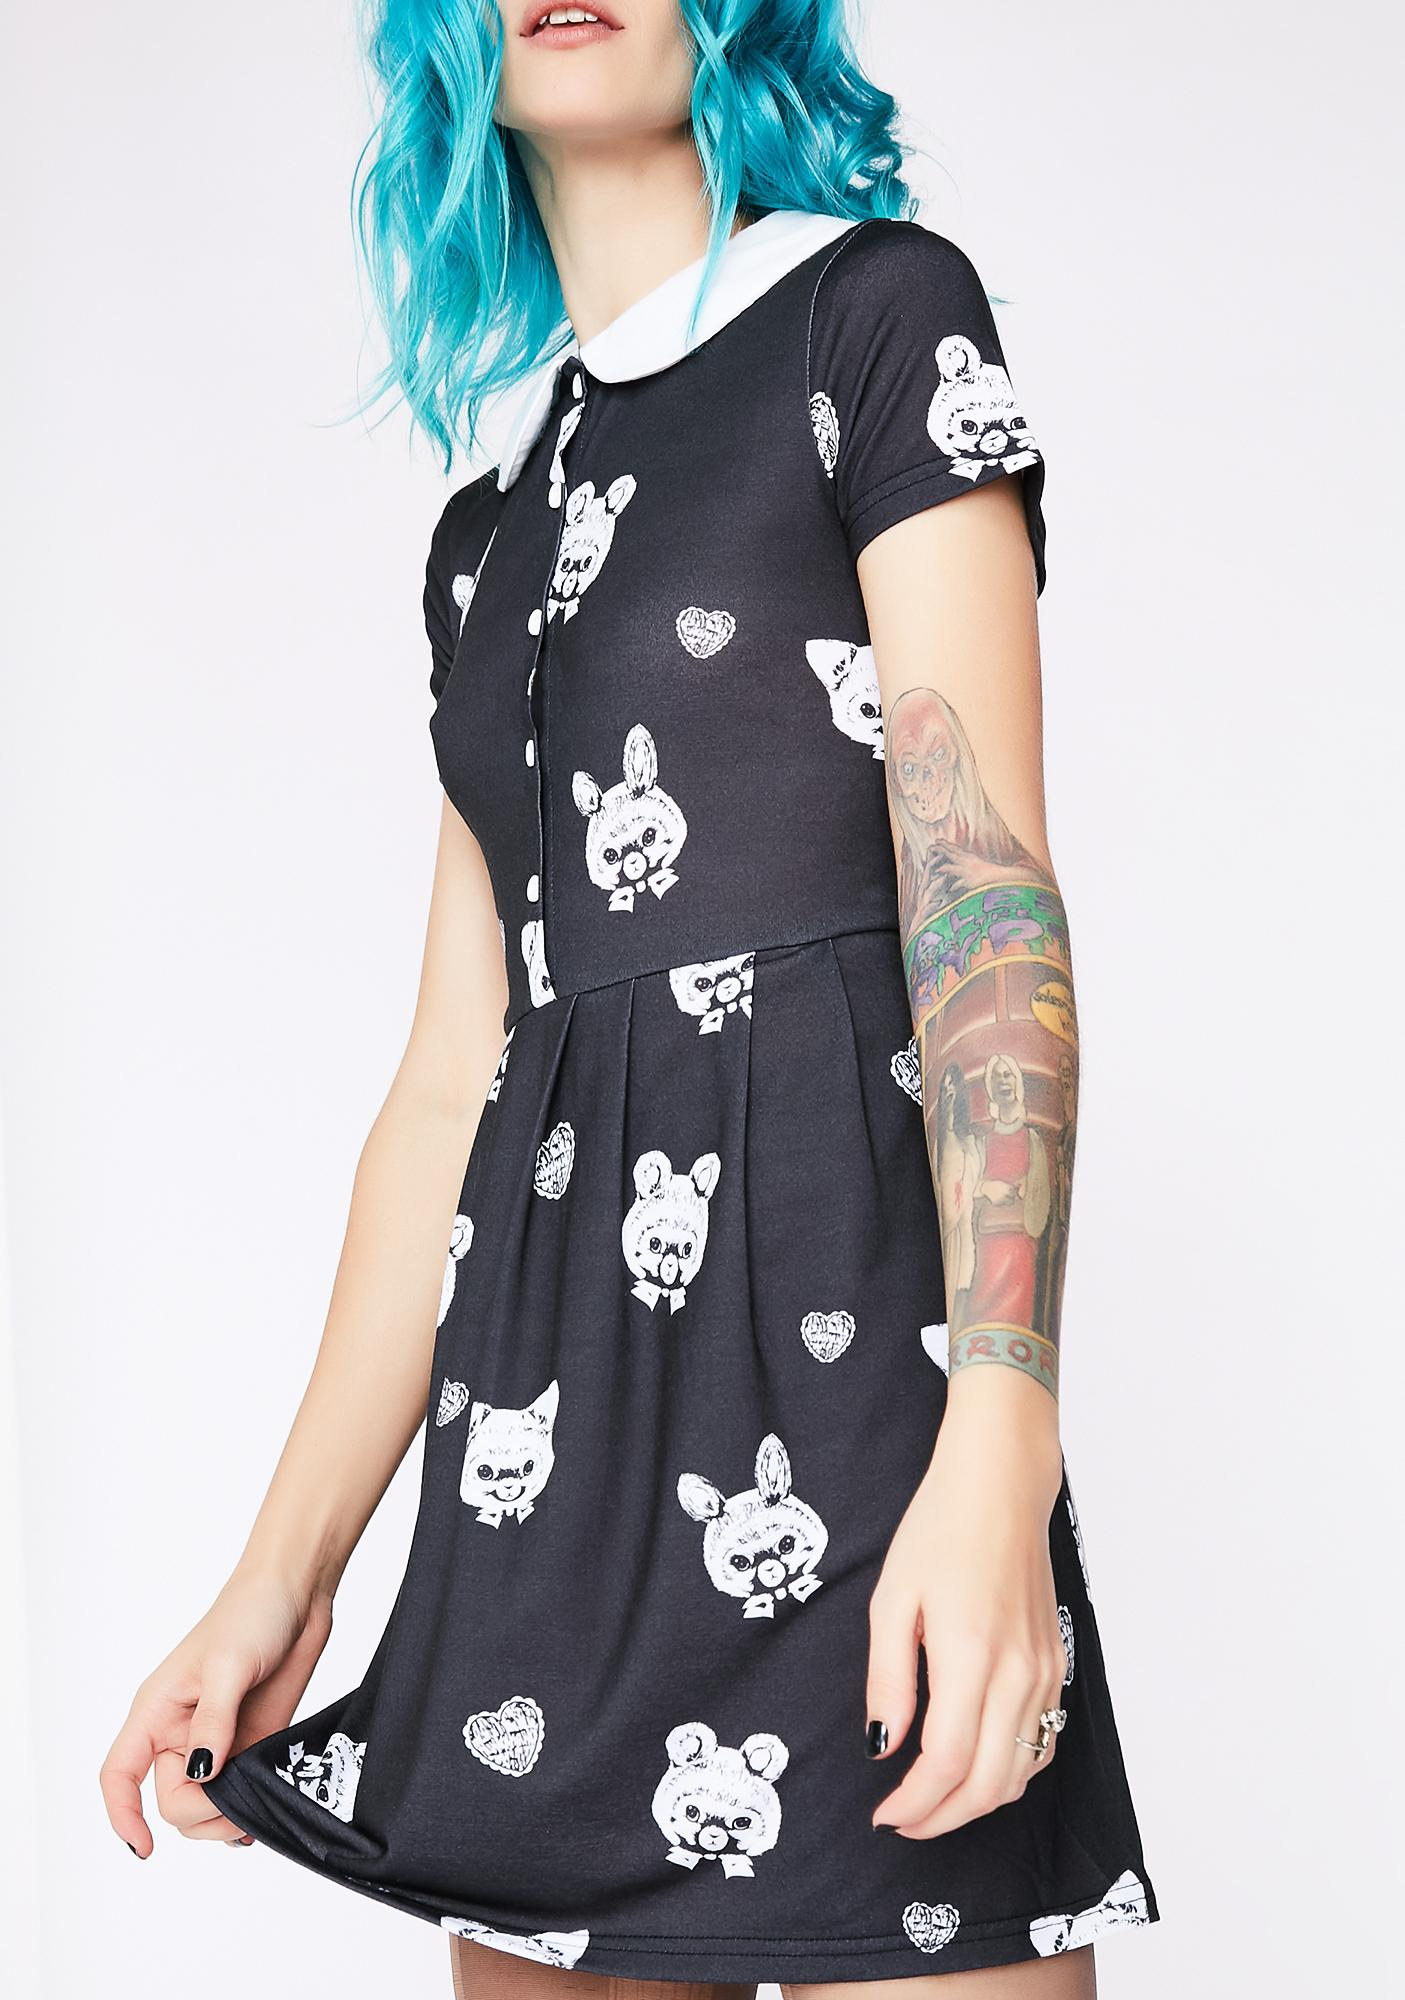 Fearless Illustration Nocturnal Playtime Peter Pan Dress